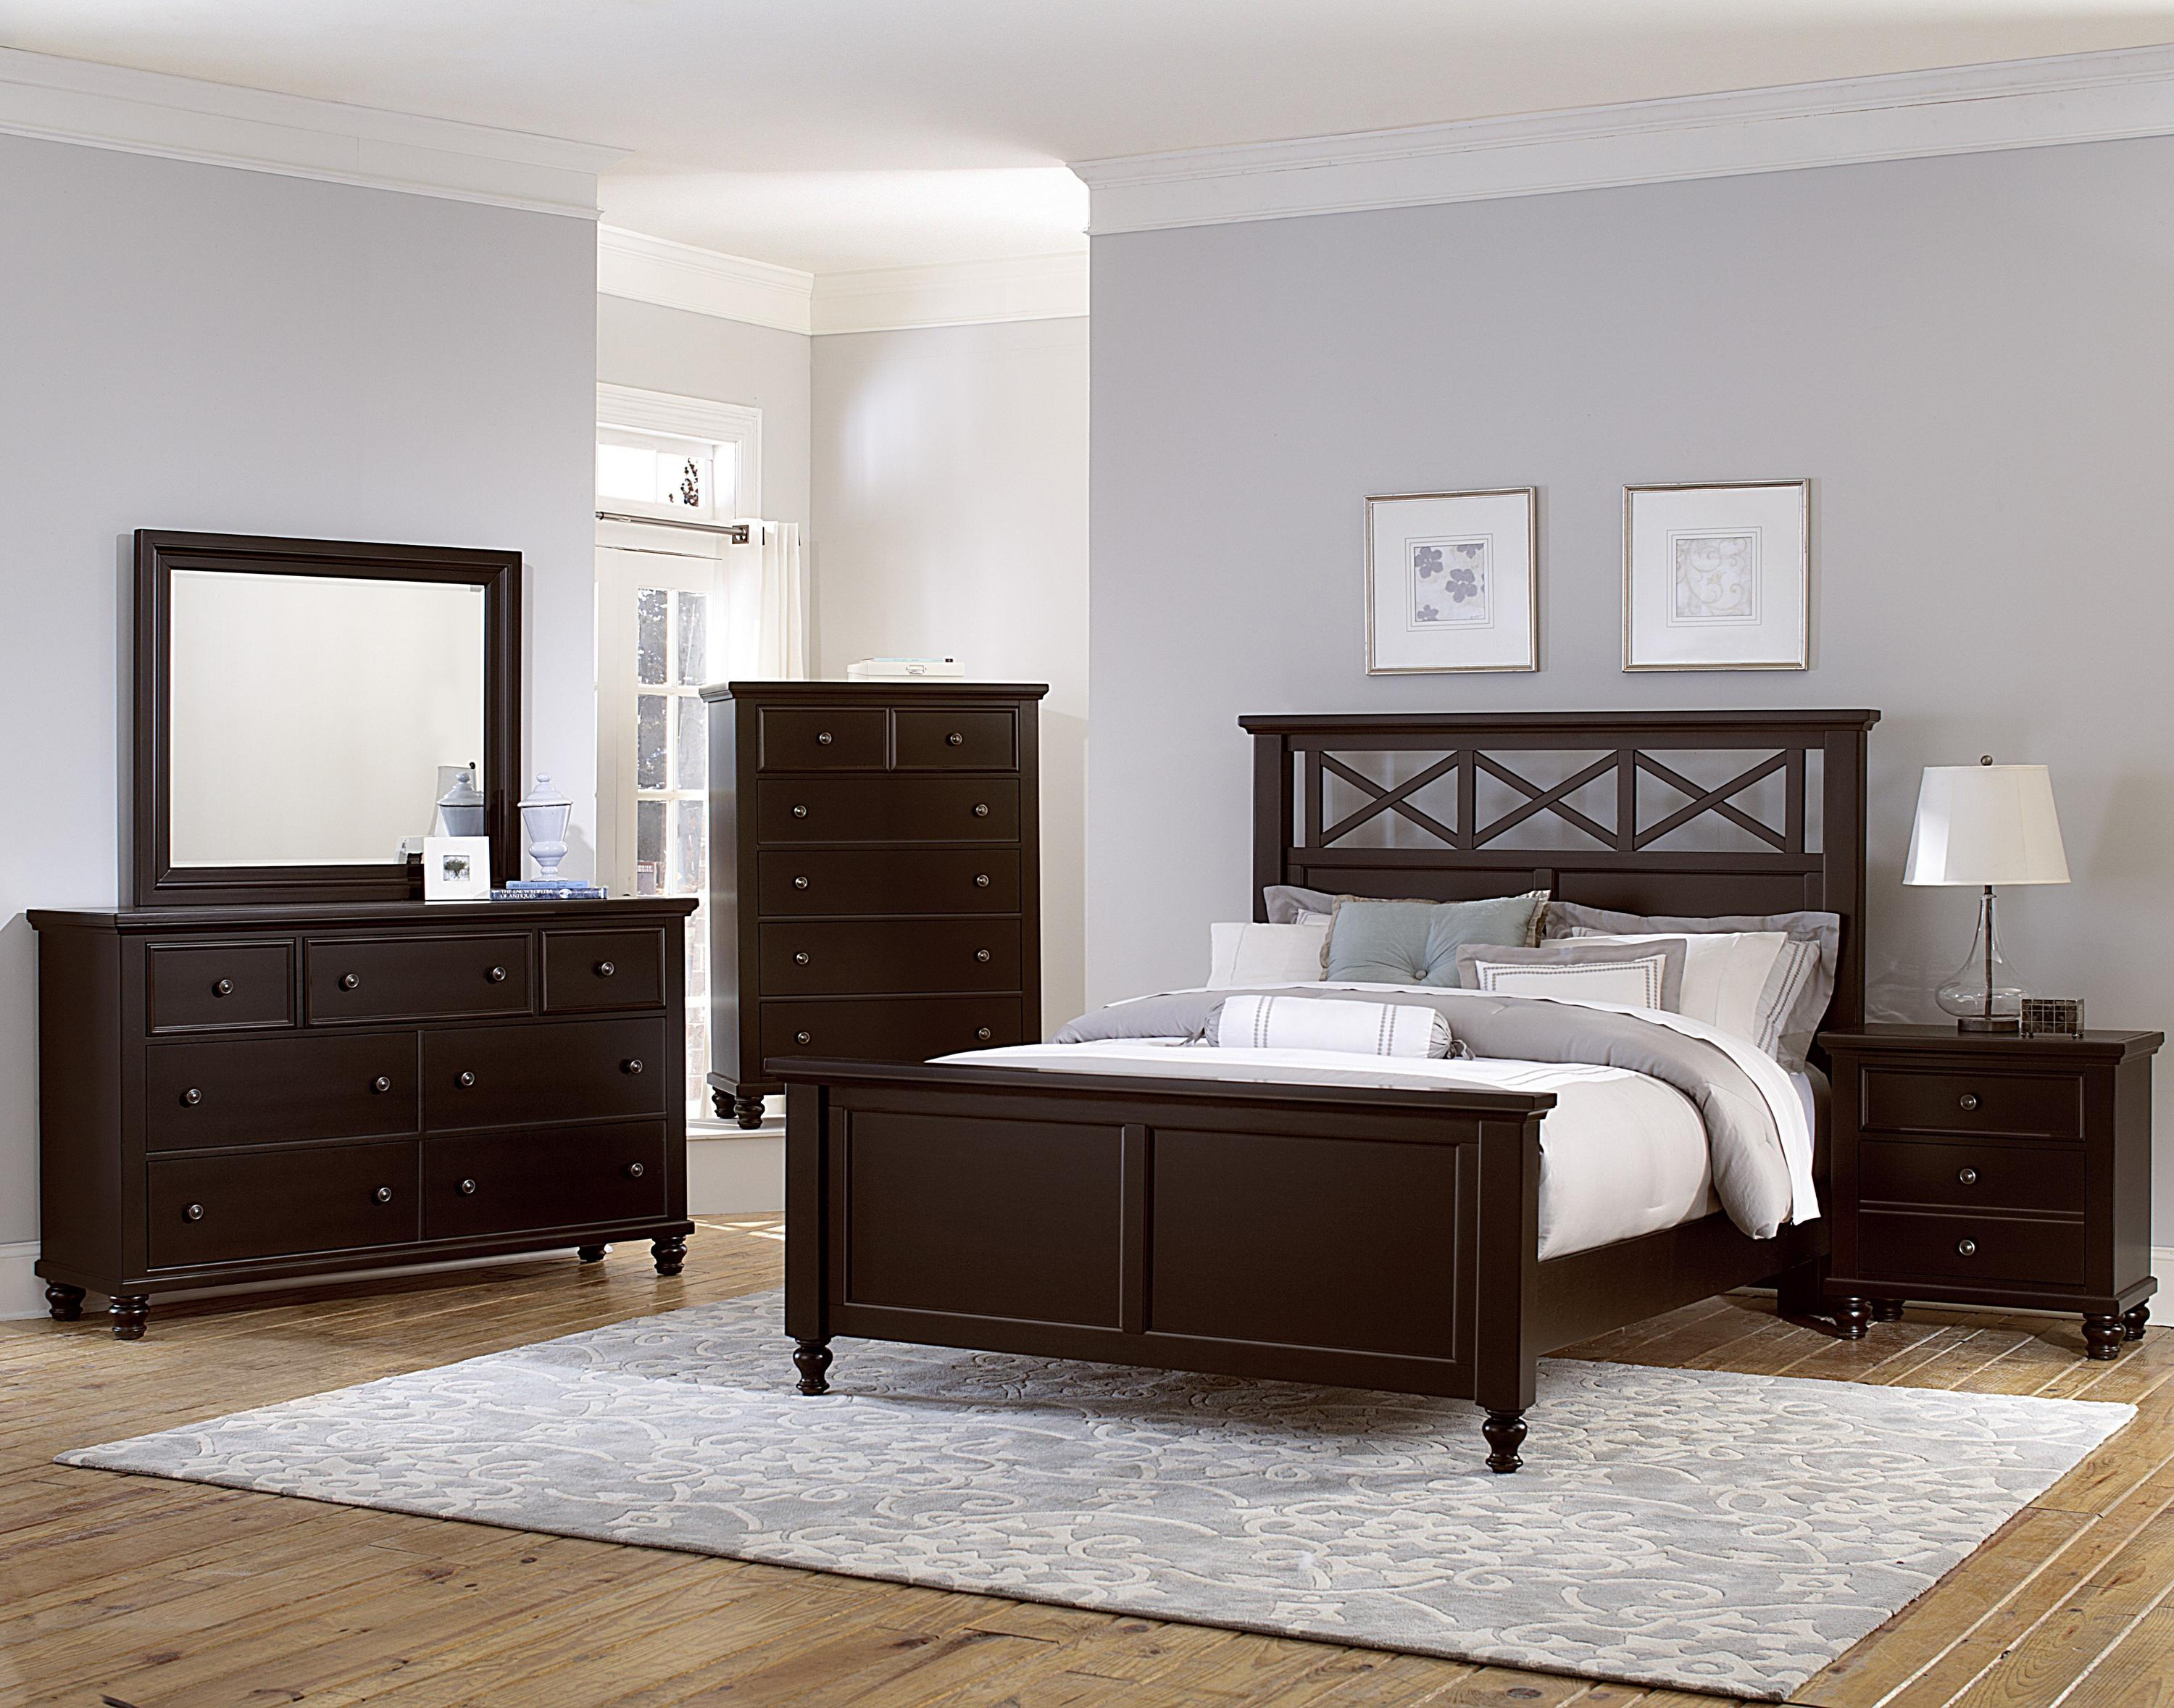 Vaughan Bassett Ellington Queen Bedroom Group - Item Number: 620 Q Bedroom Group 8